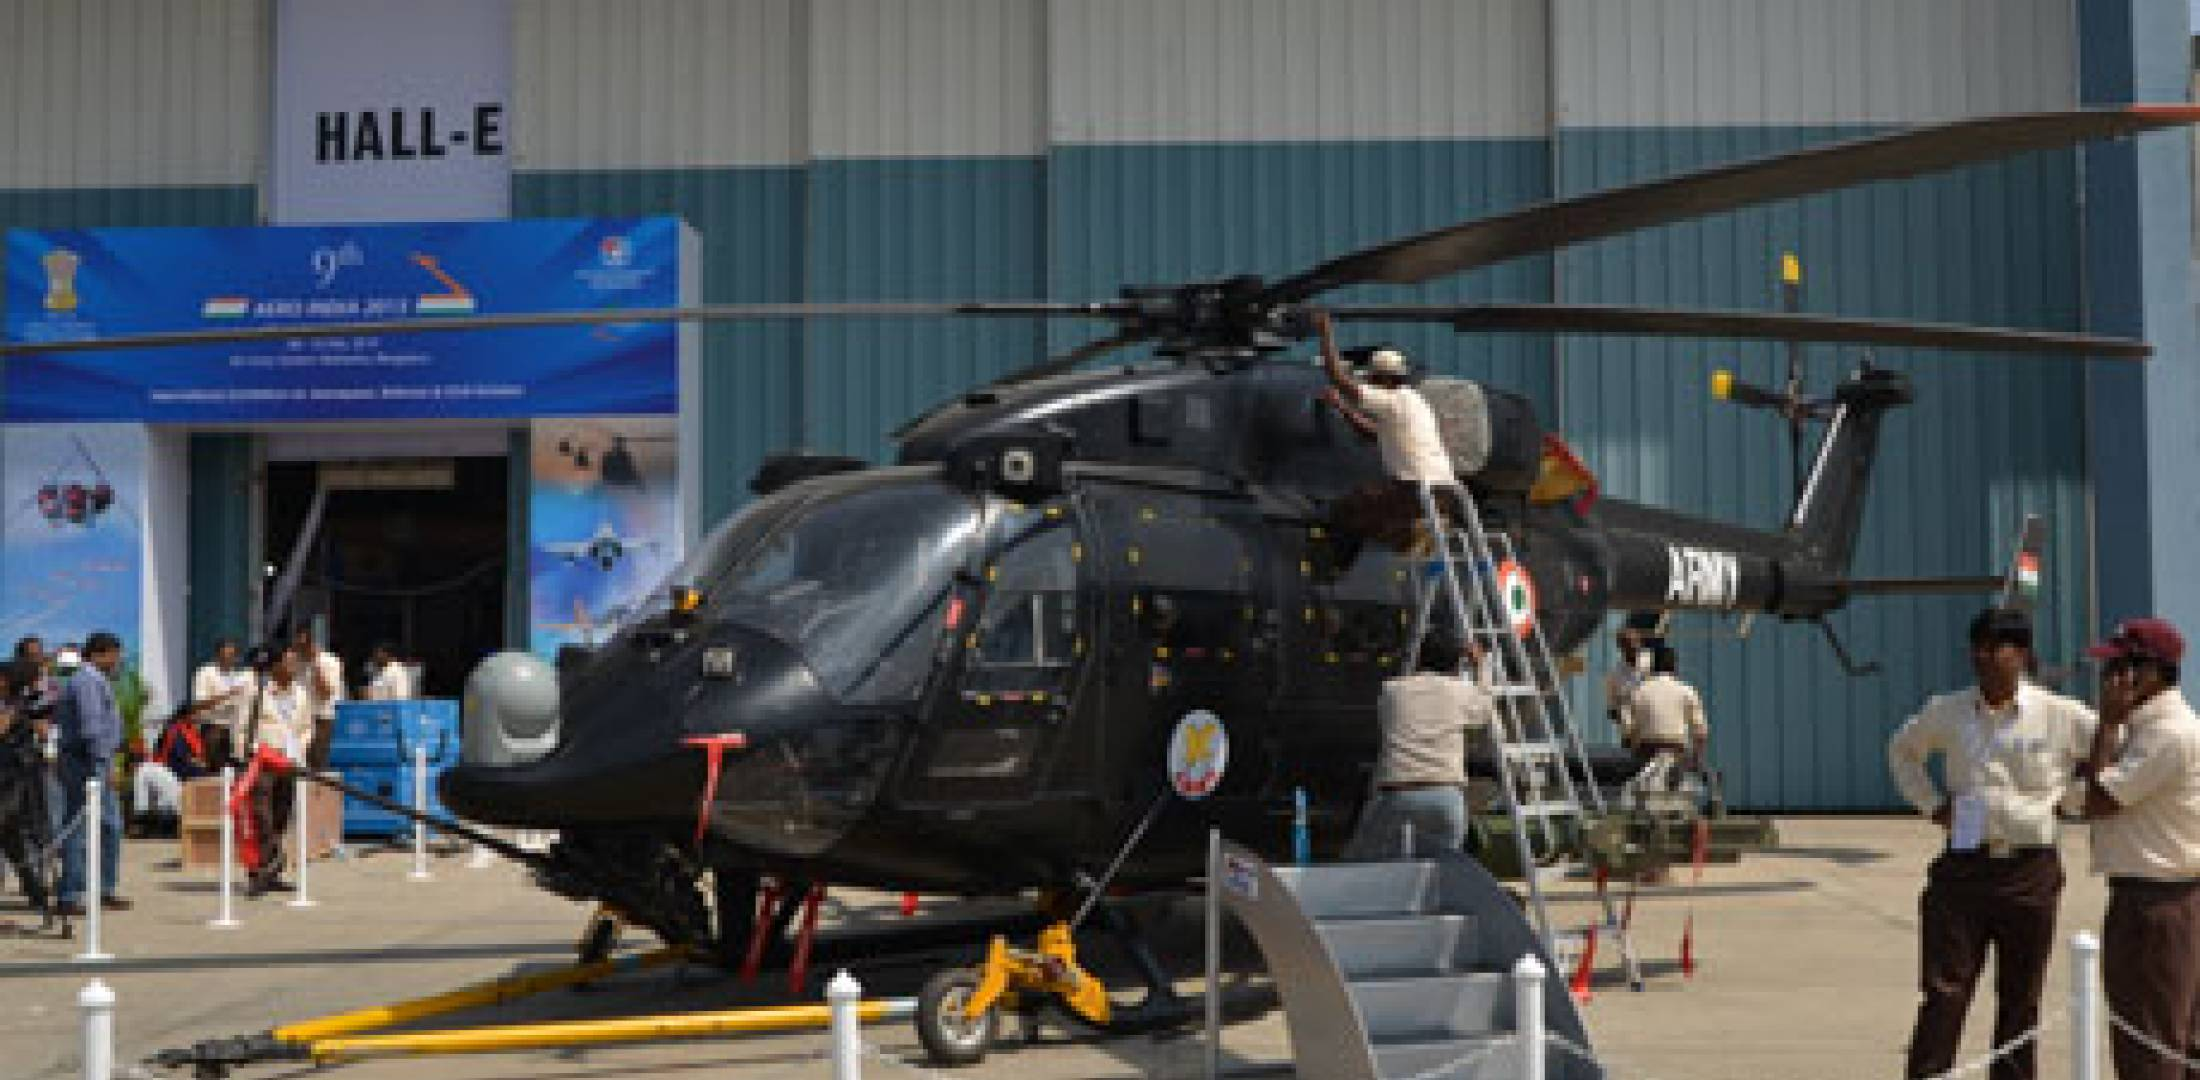 aero helicopter with Hals Rudra Heads Helicopter Showings Aero India on Mi 28UB OP1 also heavylifthelicopter besides Hals Rudra Heads Helicopter Showings Aero India furthermore Rolls Royce And Microsoft Put Engines On The Inter besides How To Transport A Black Hawk On The Road.